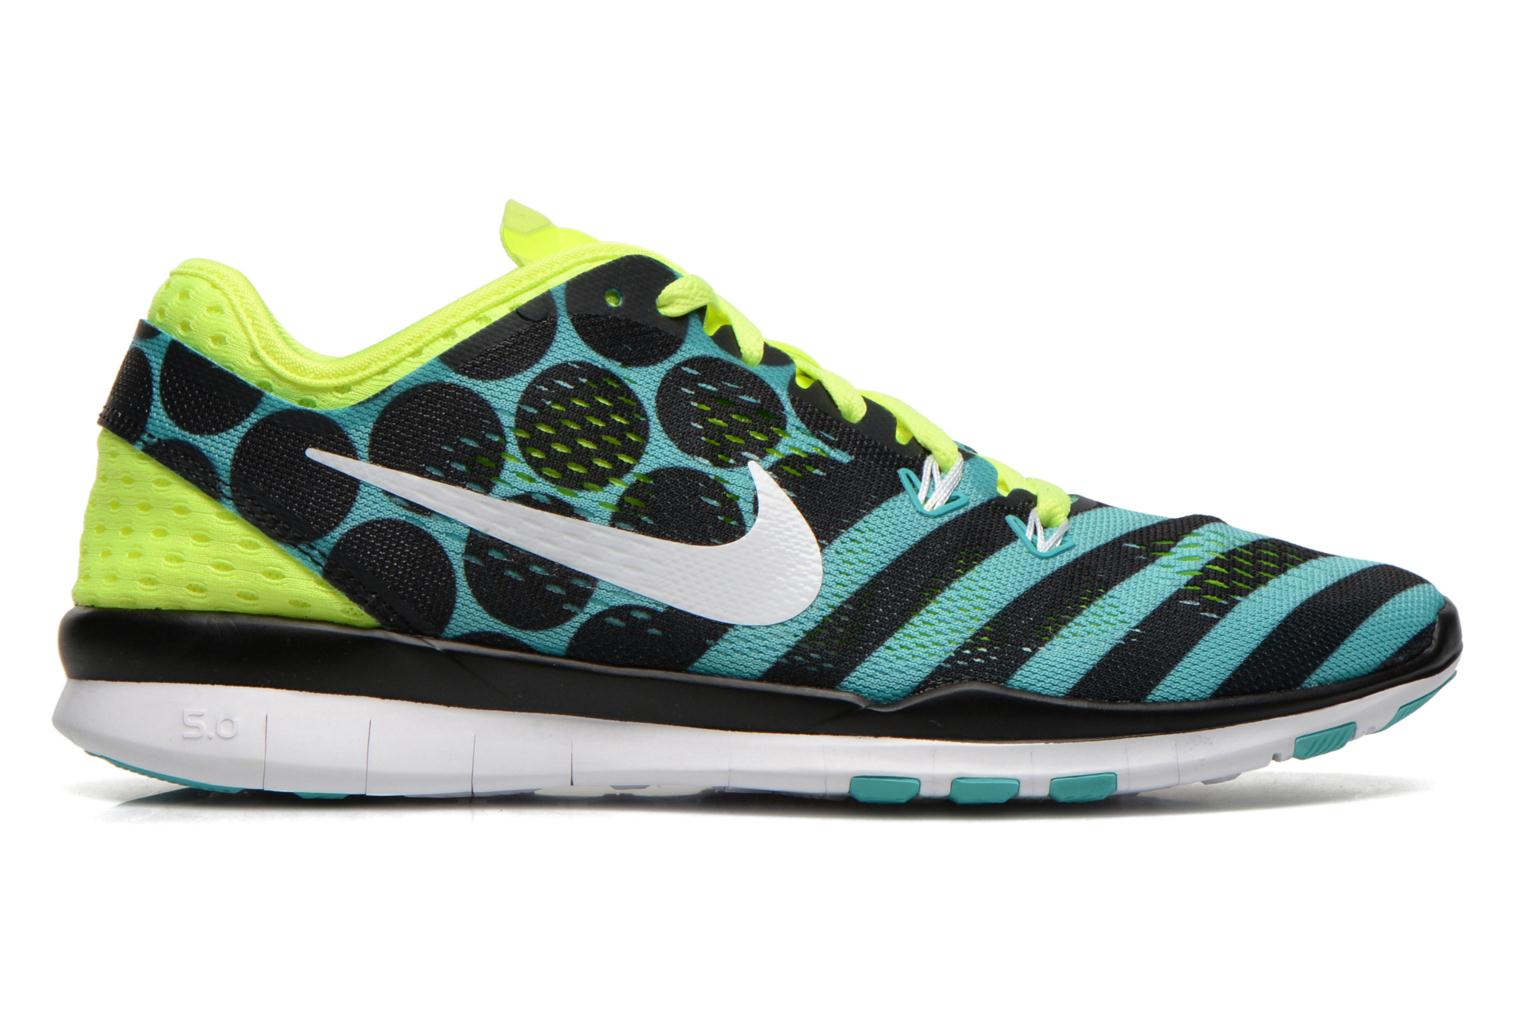 Wmns Nike Free 5.0 Tr Fit 5 Prt Lt Retro/White-Black-Volt